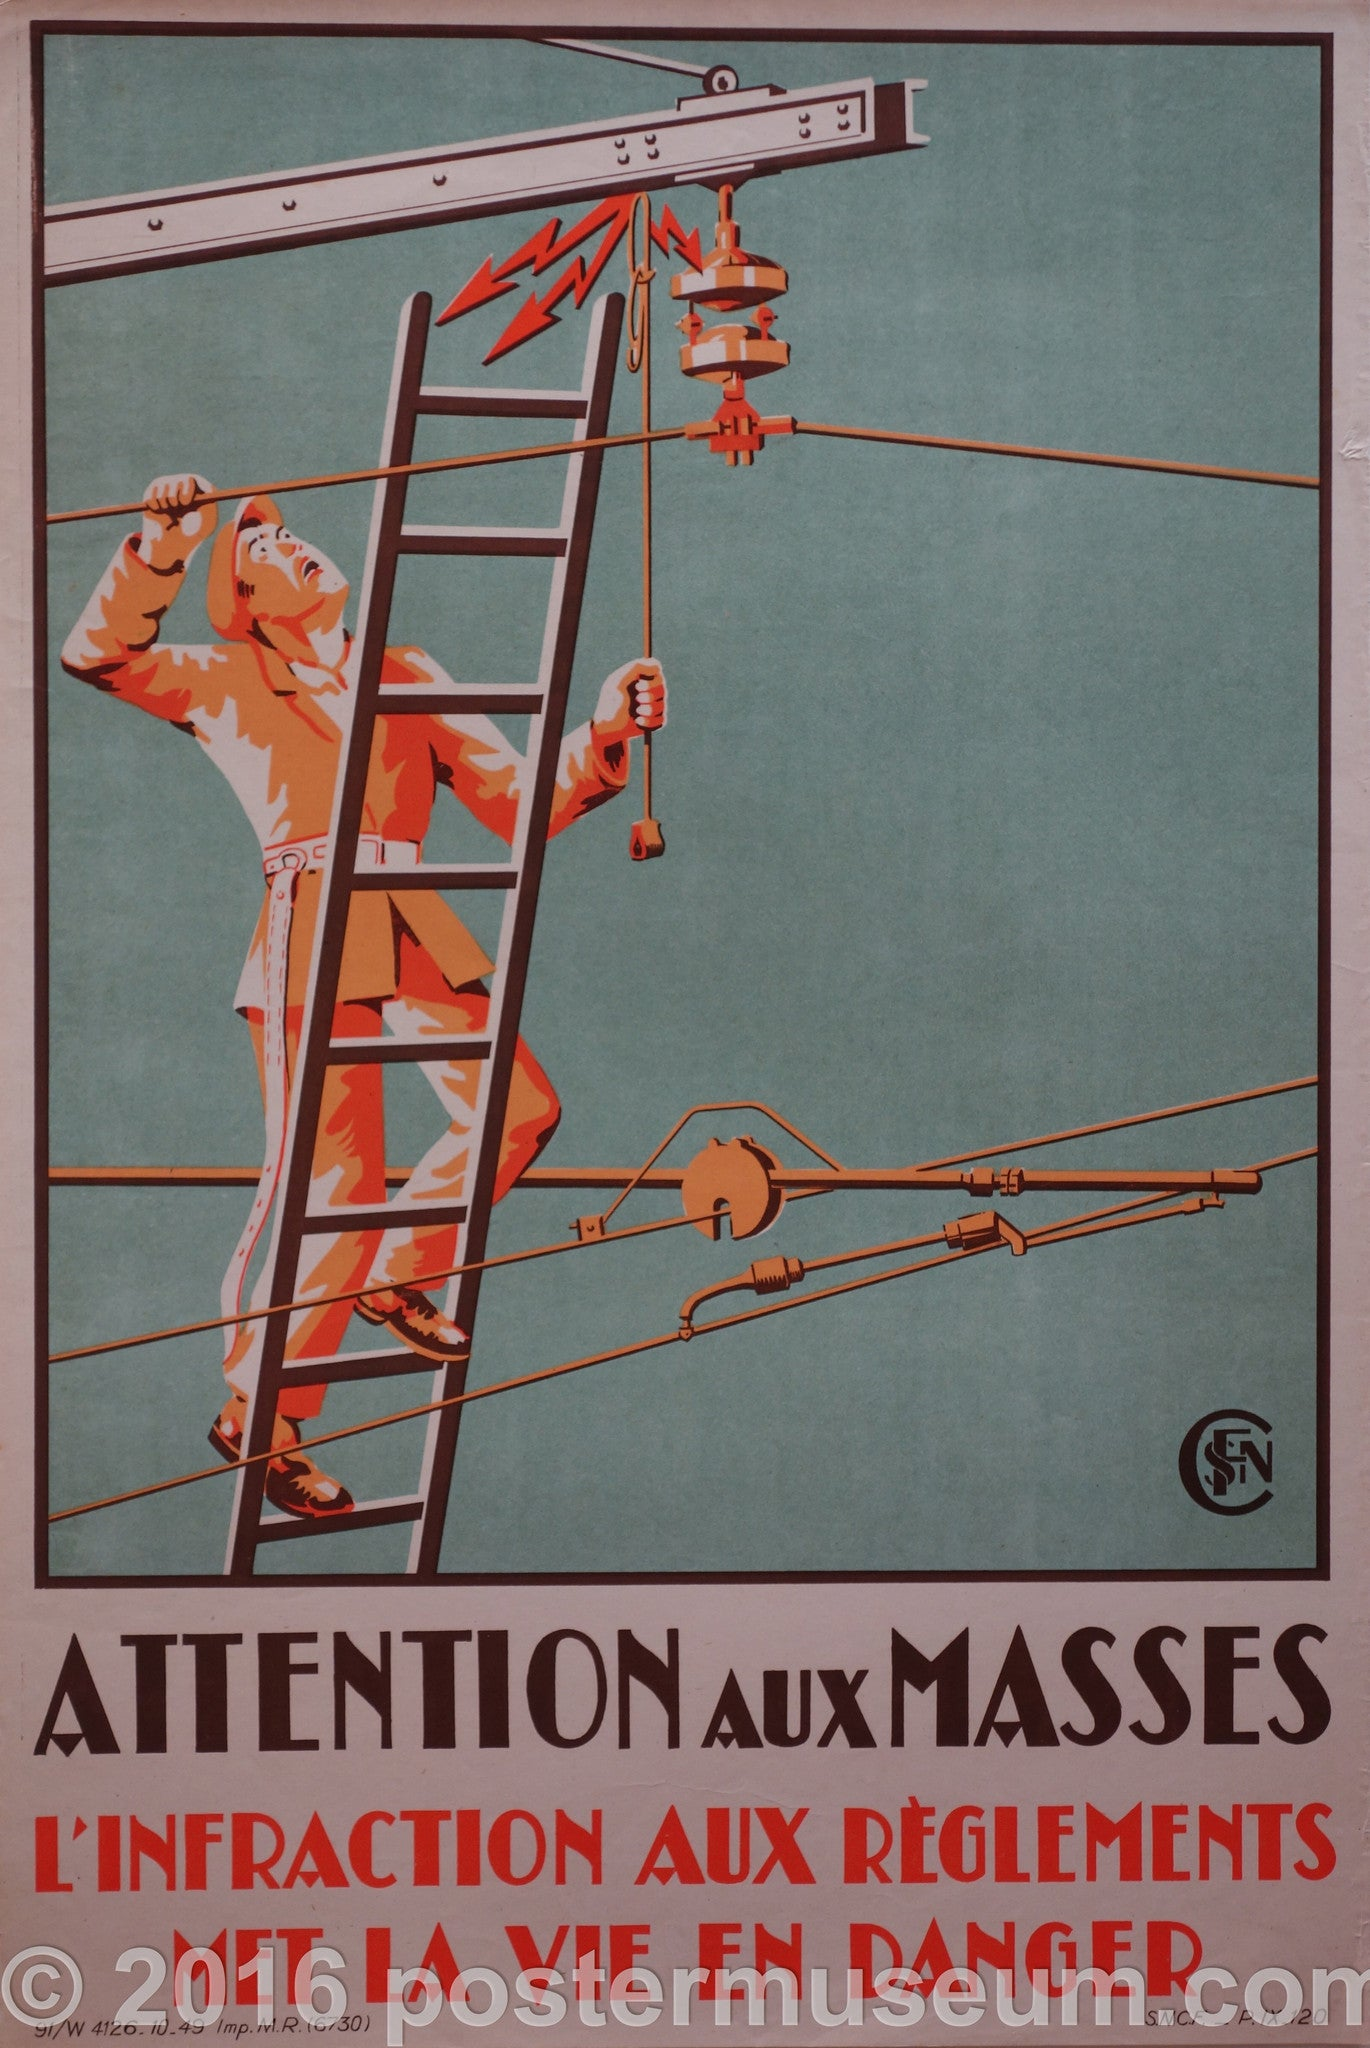 Attention aux masses